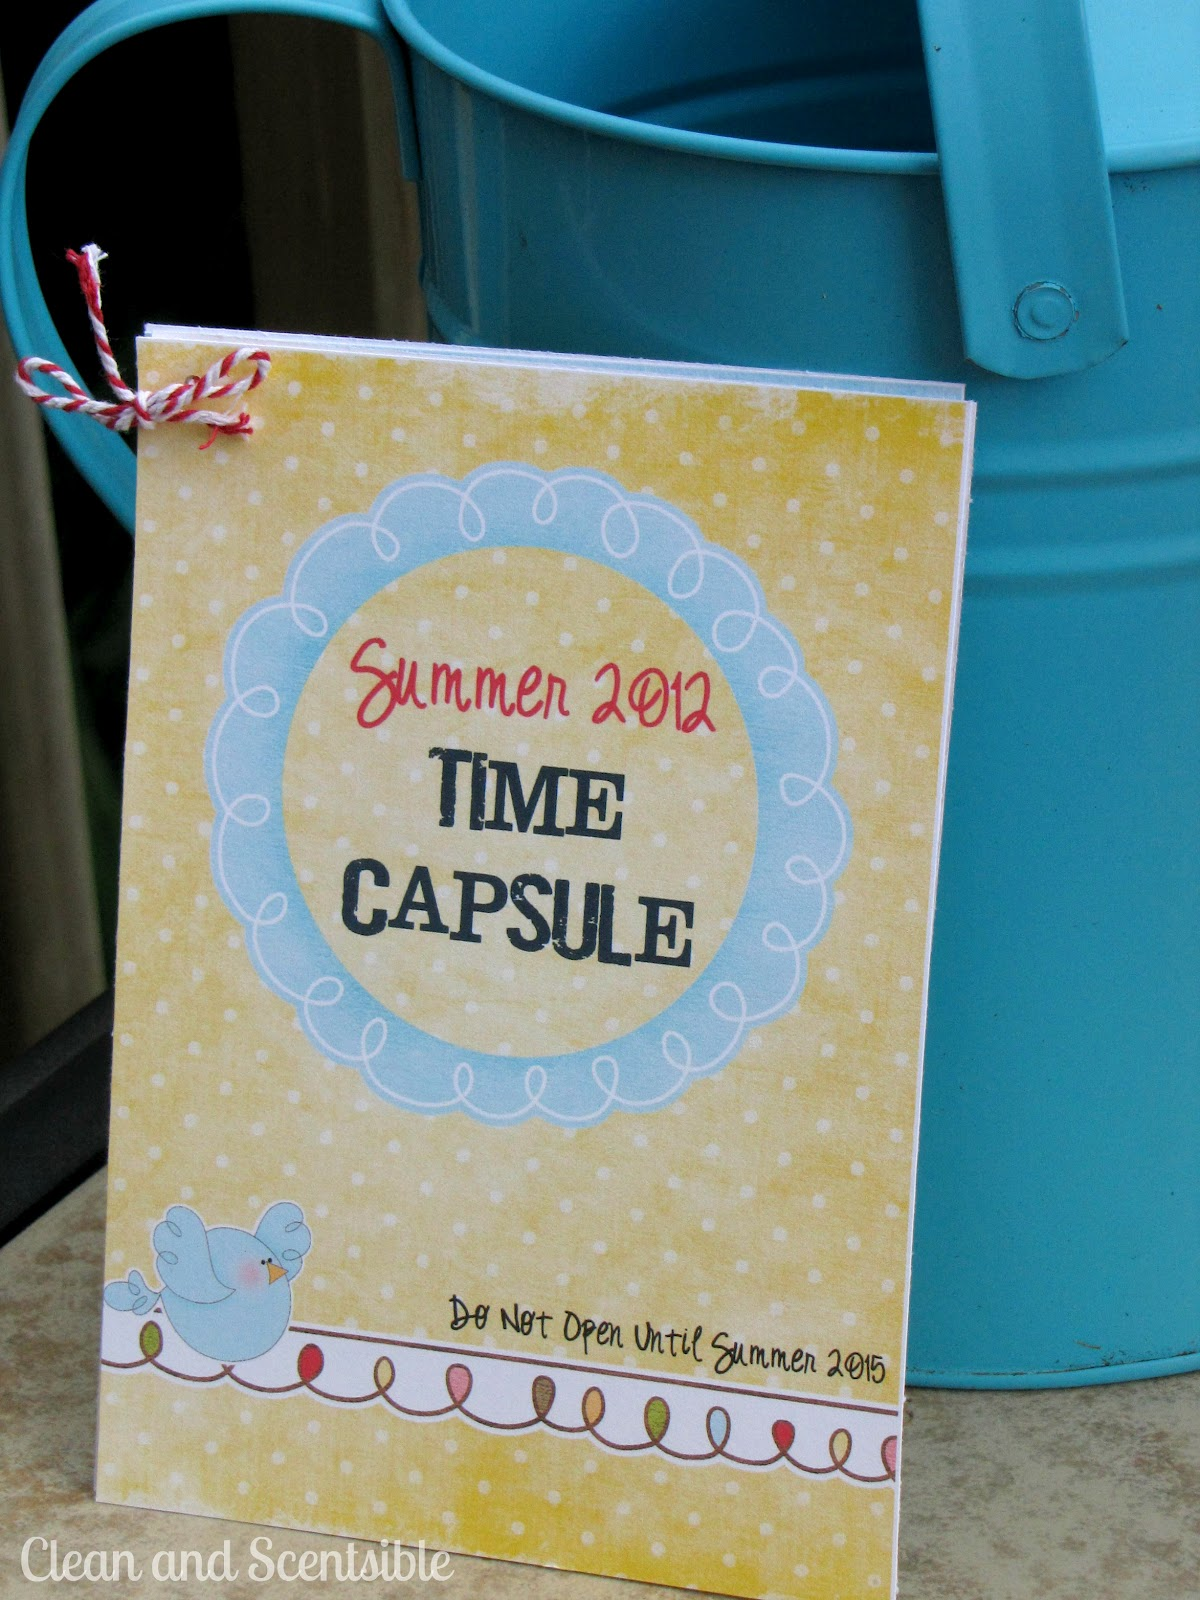 Summer Camp: Time Capsule